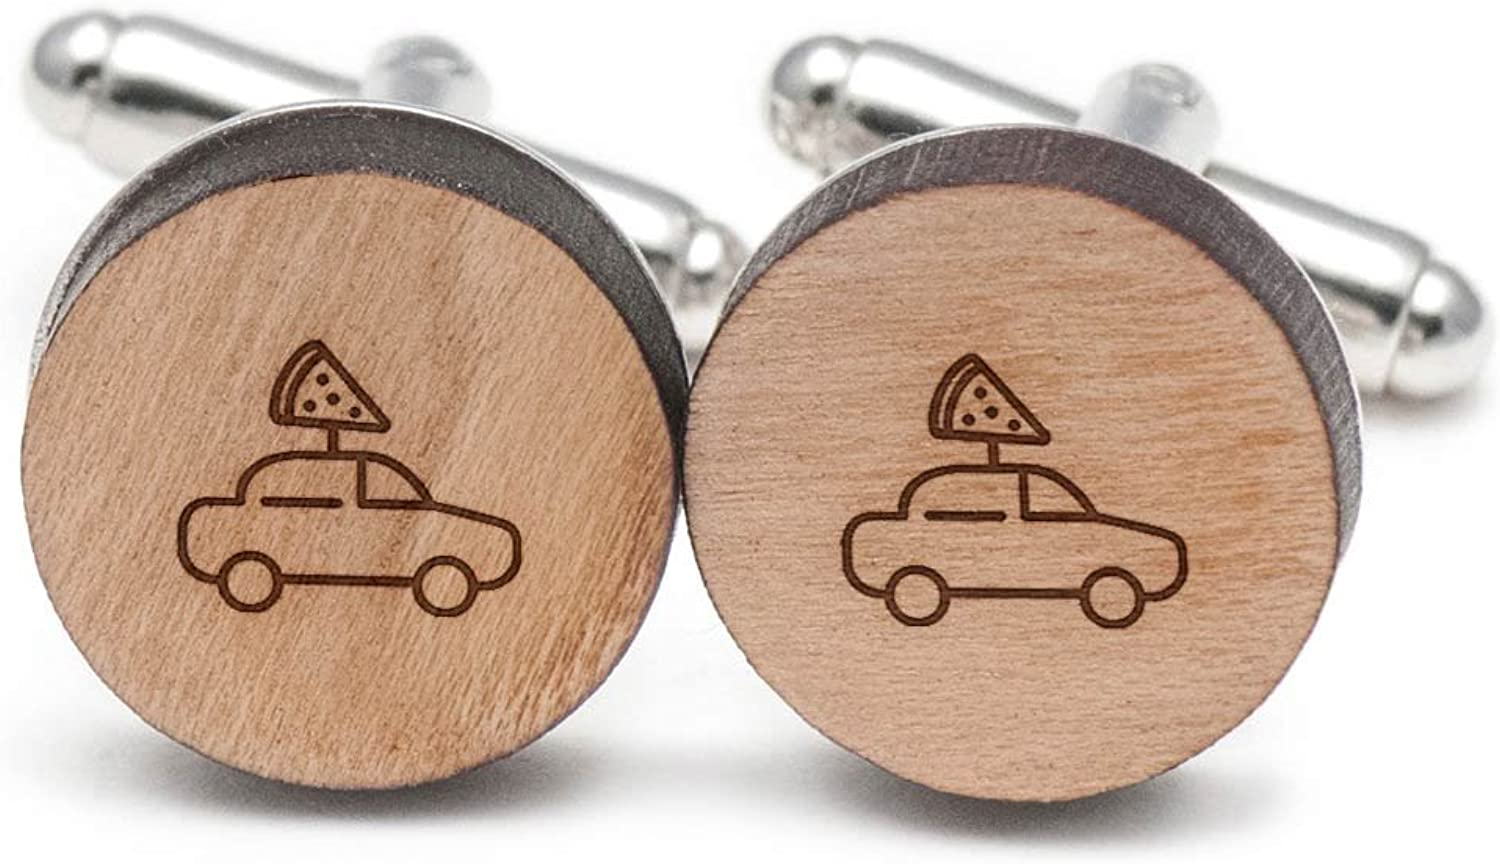 Wooden Accessories Company Wooden Tie Clips with Laser Engraved Delivery Vehicle Design Cherry Wood Tie Bar Engraved in The USA